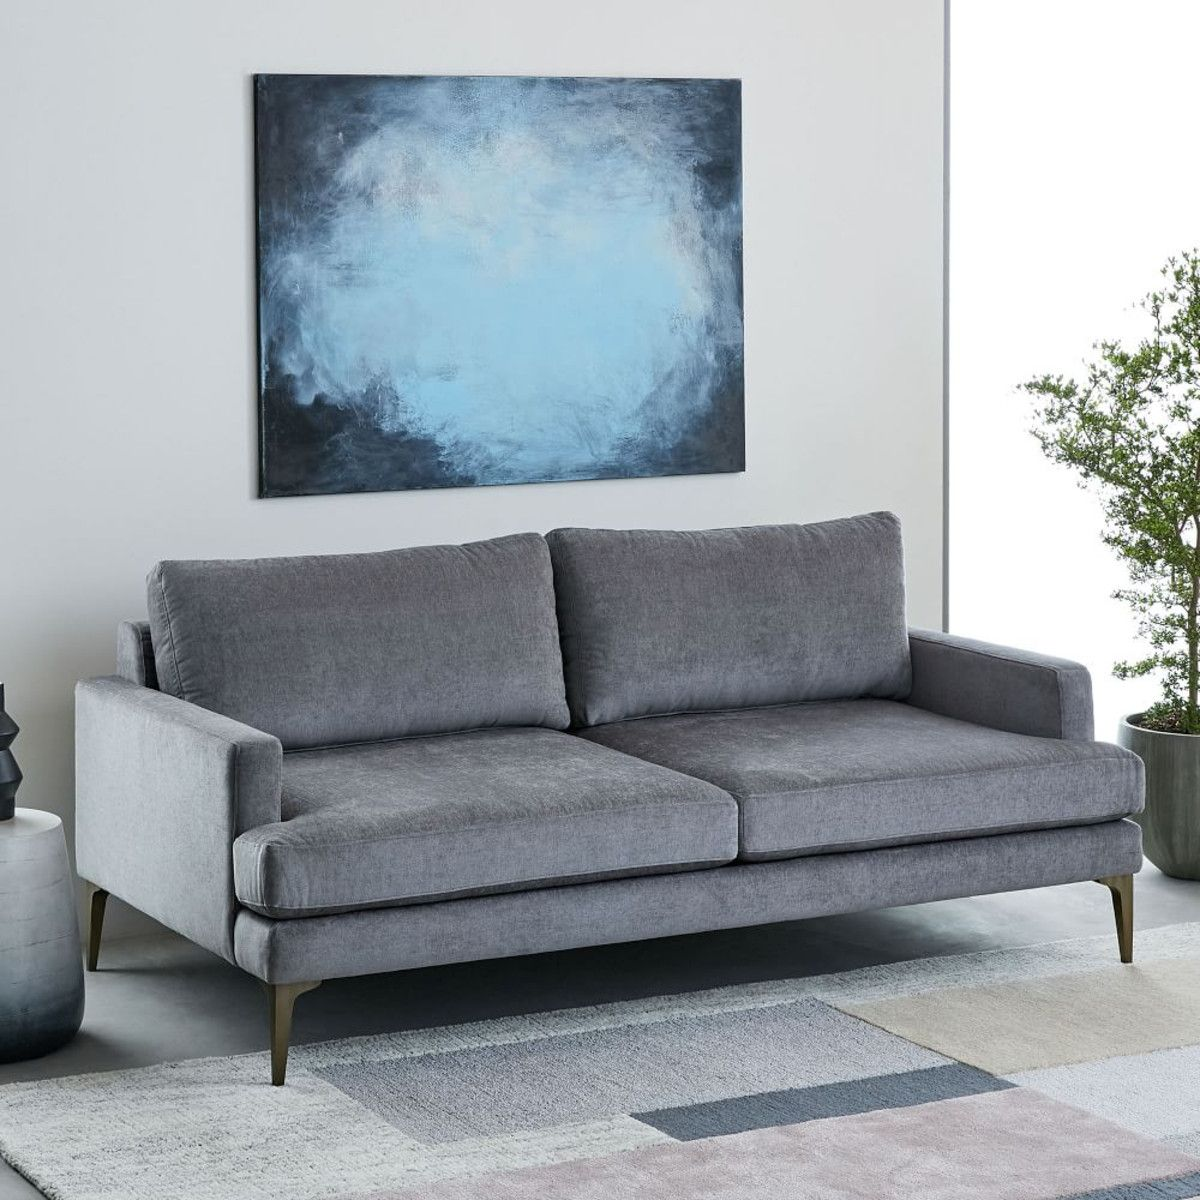 Sofa Modern Skandinavisch Affiliatelink Andes Sofa 194 Cm Metal Distressed